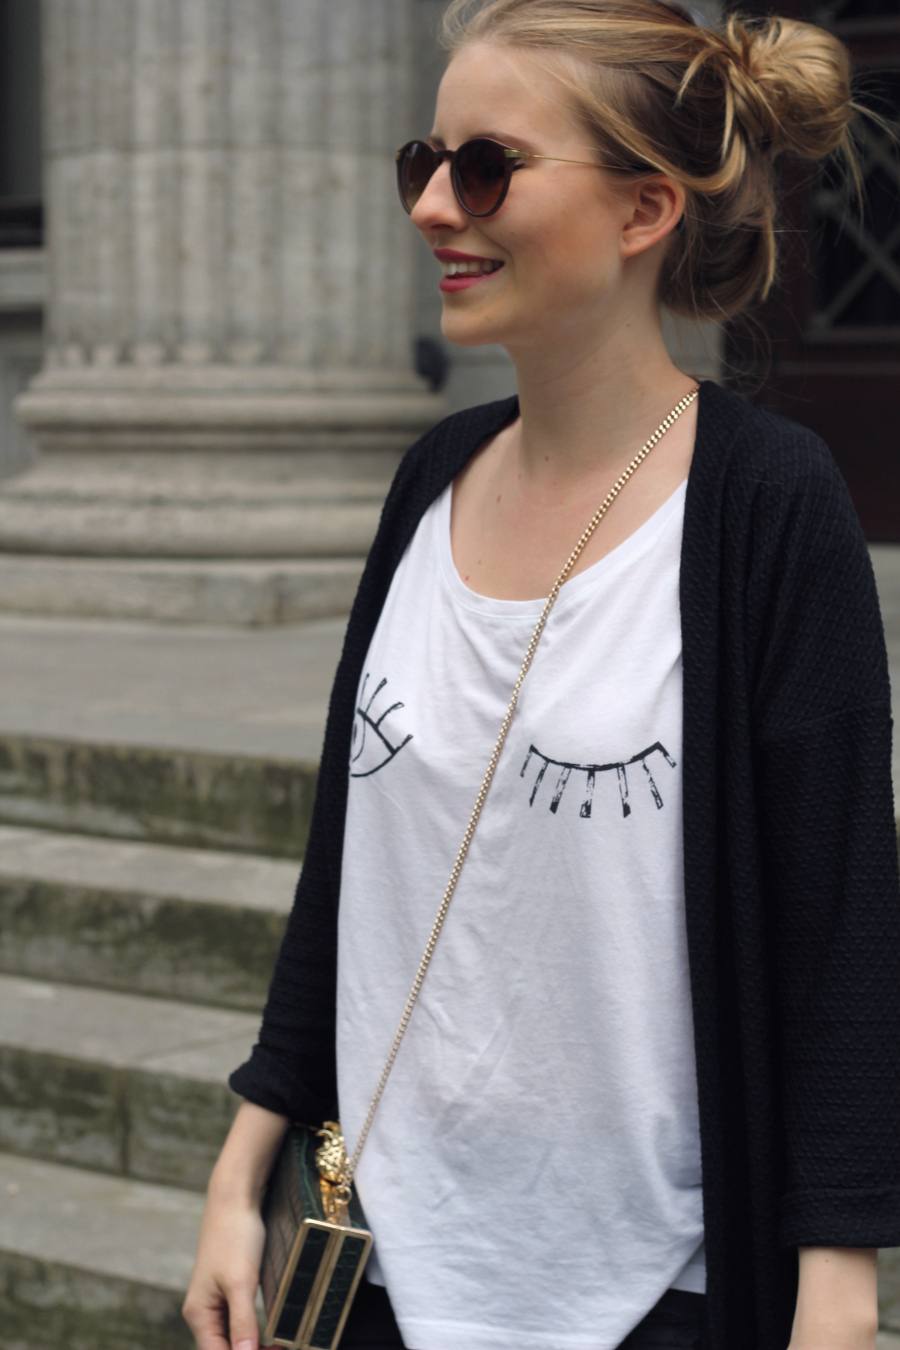 outfit zwinker shirt fashionid basic sonnenbrille blond cardigan gold gruen clutch frankfurt city